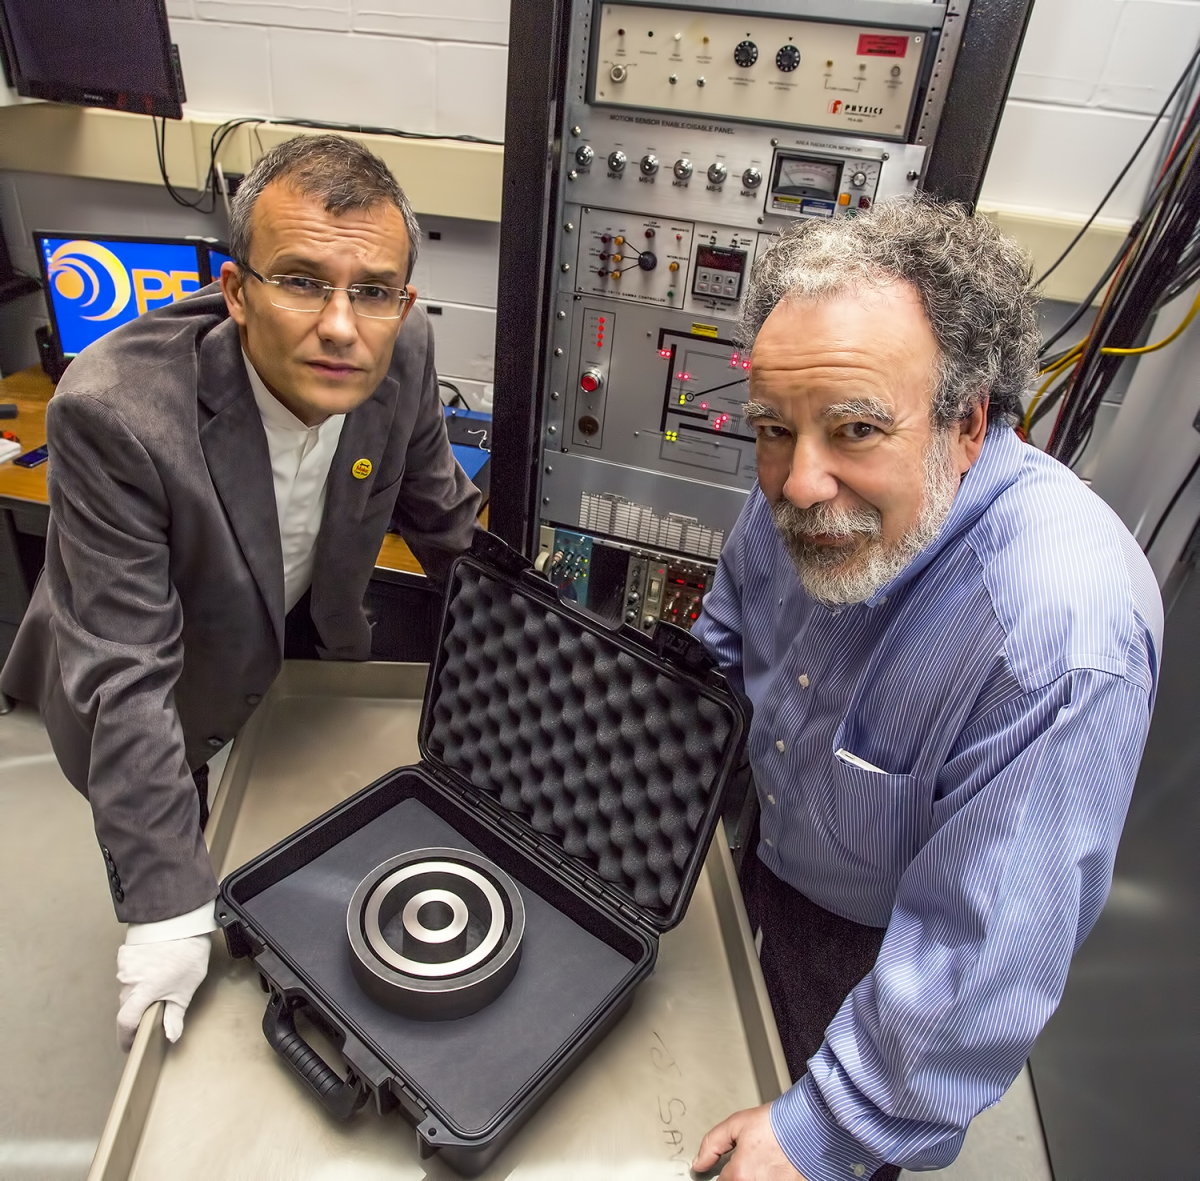 Physicists Alexander Glaser, left, and Robert Goldston, display the non-nuclear test object that will serve as a target in their research.